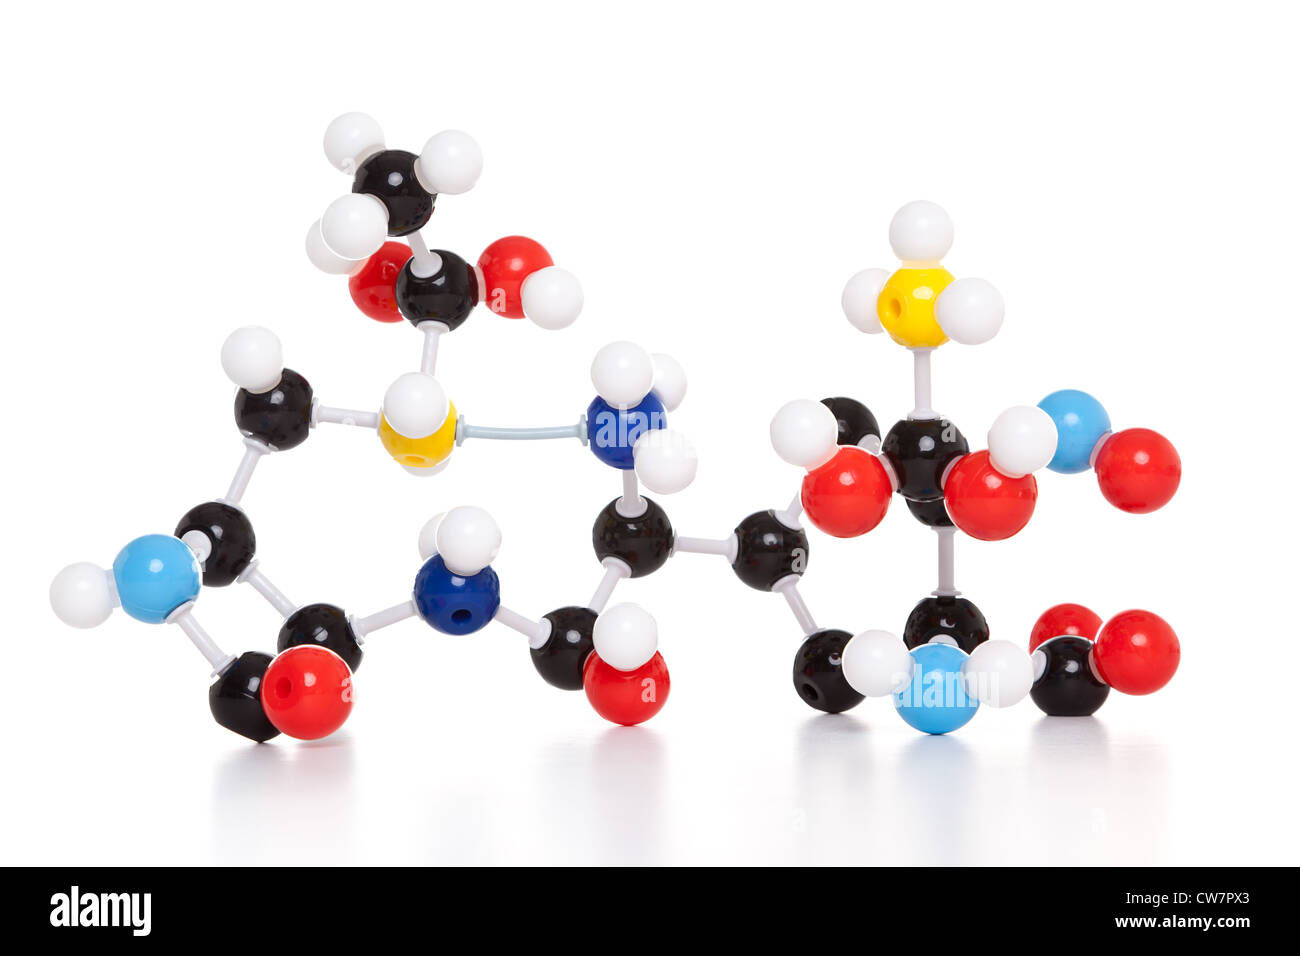 Photo of a molecular atom model isolated on a white background. - Stock Image